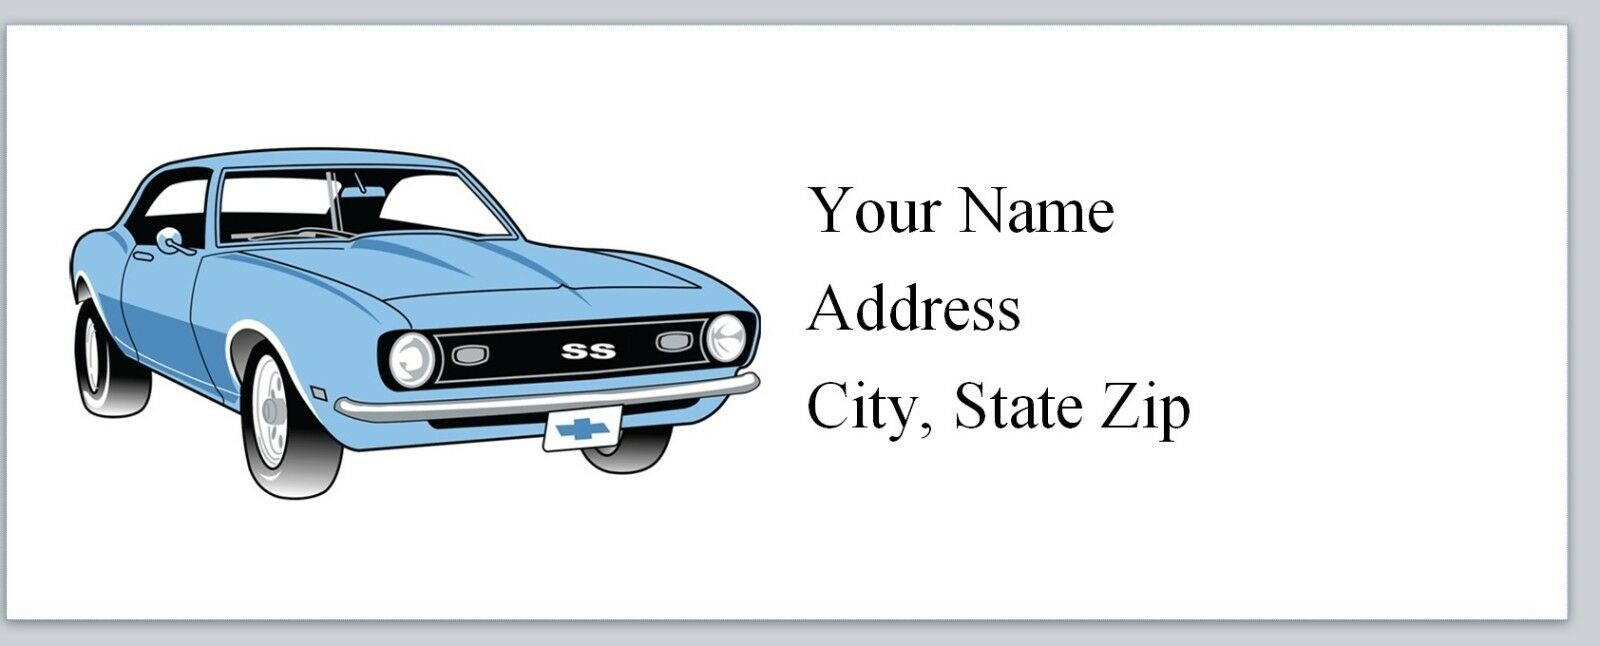 Personalized Return Address Labels Vintage Car Buy 3 Get 1 (bo 907 ...